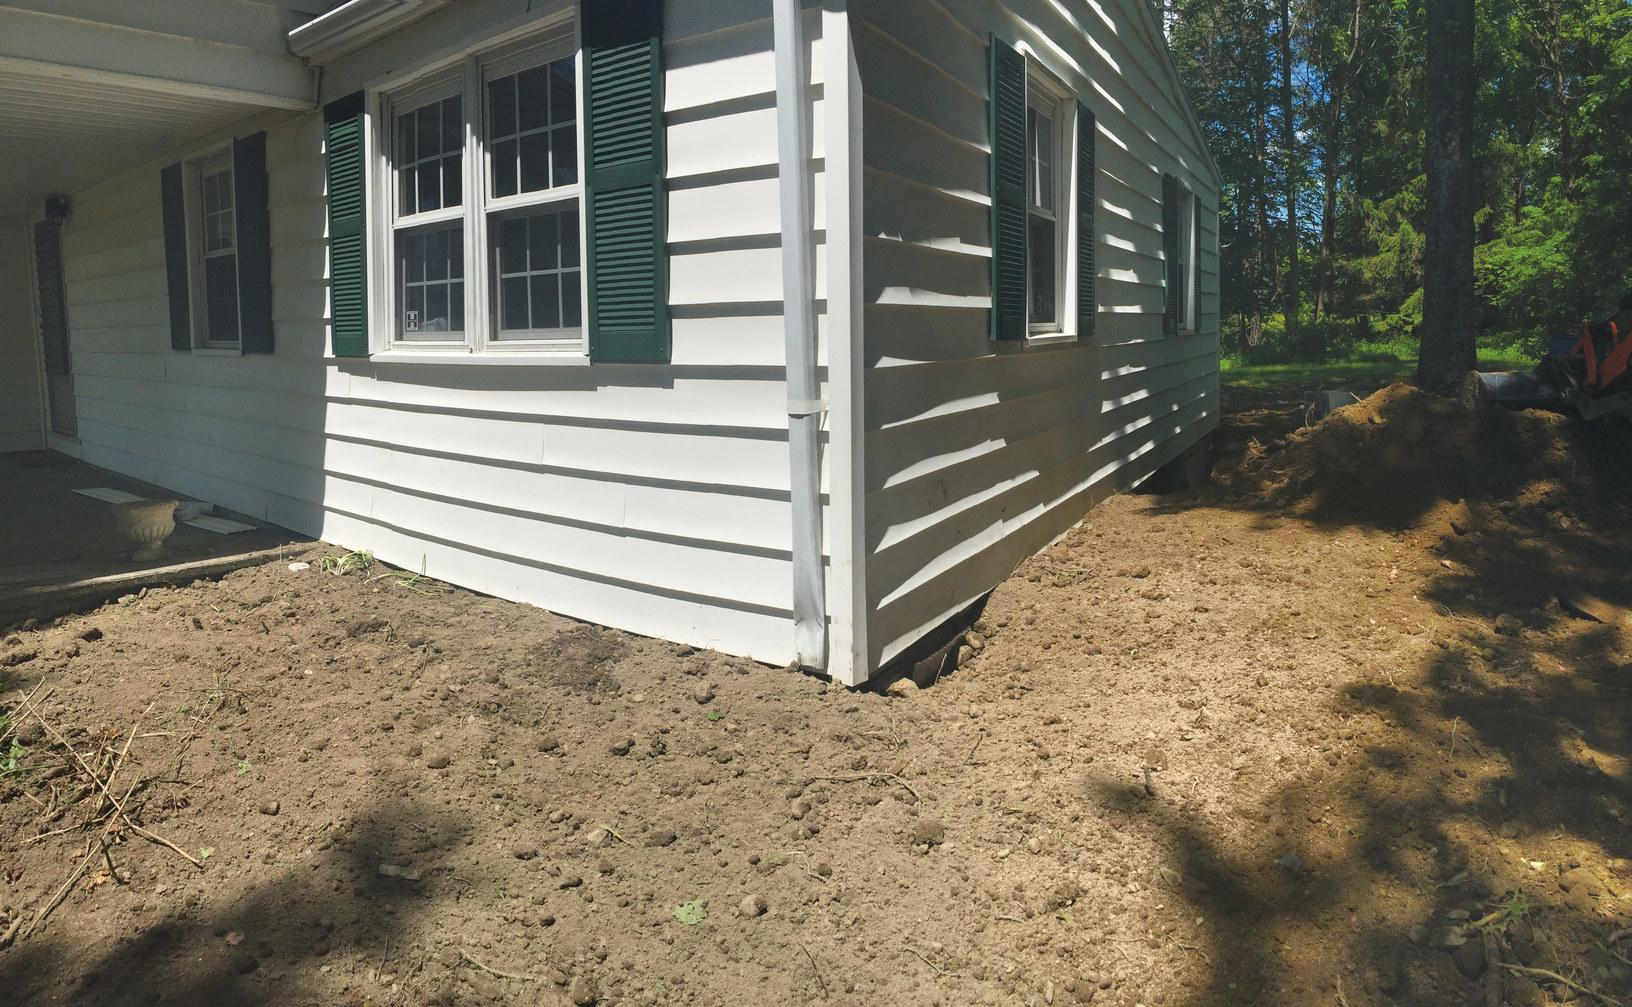 New Foundation & Drainage Line - After Photo